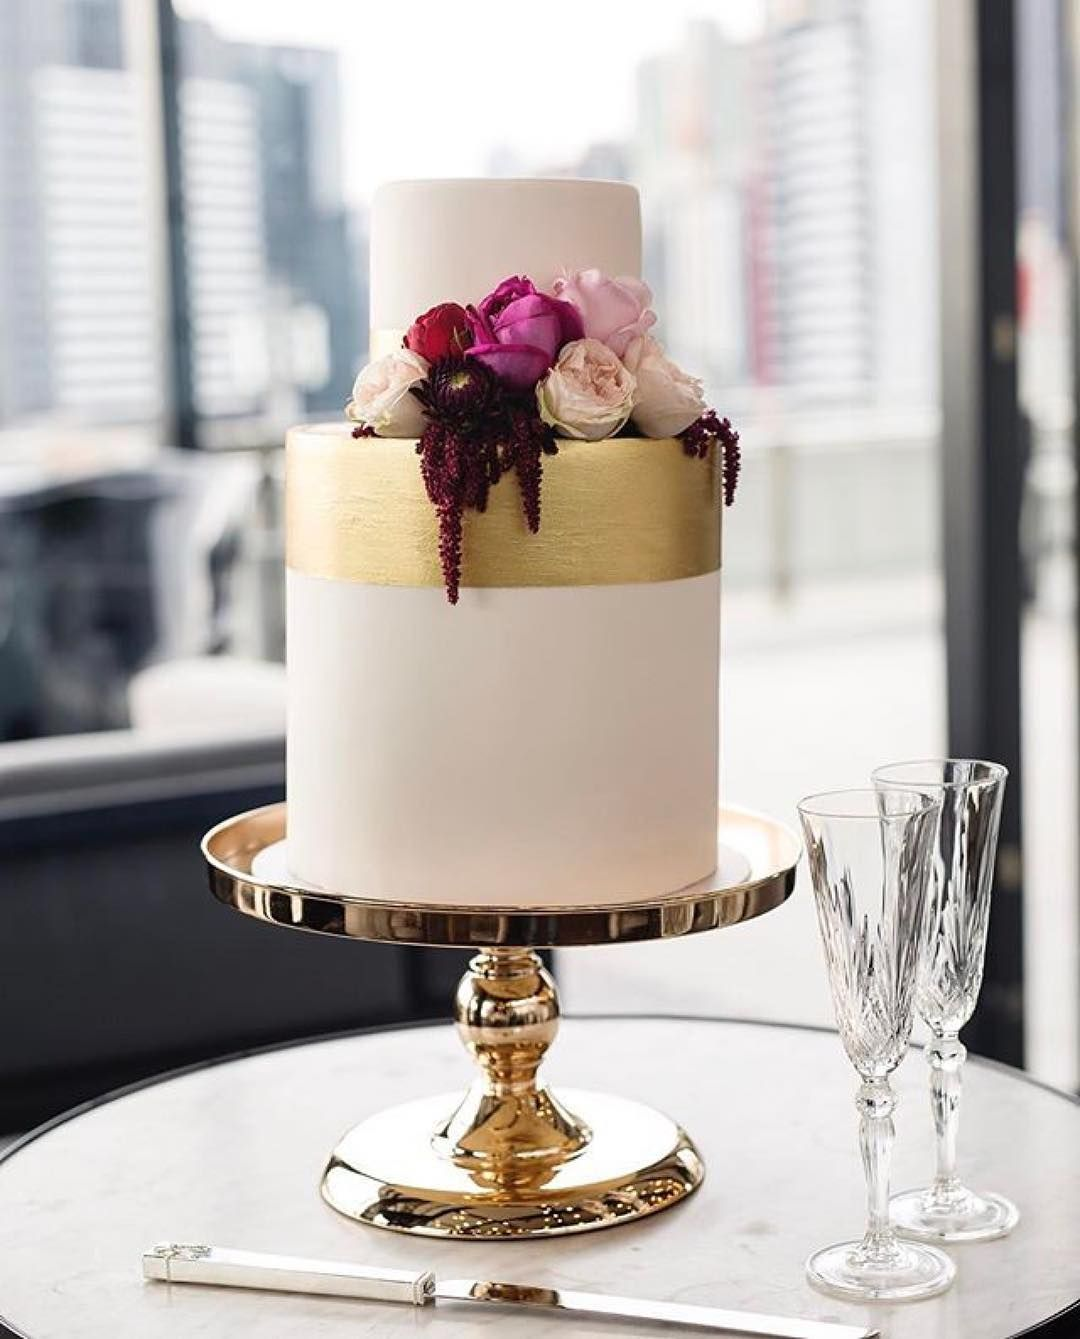 Top 10 Wedding Cake Suppliers In Melbourne: THAT GOLDEN TOUCH Melbourne Suppliers: CAKE